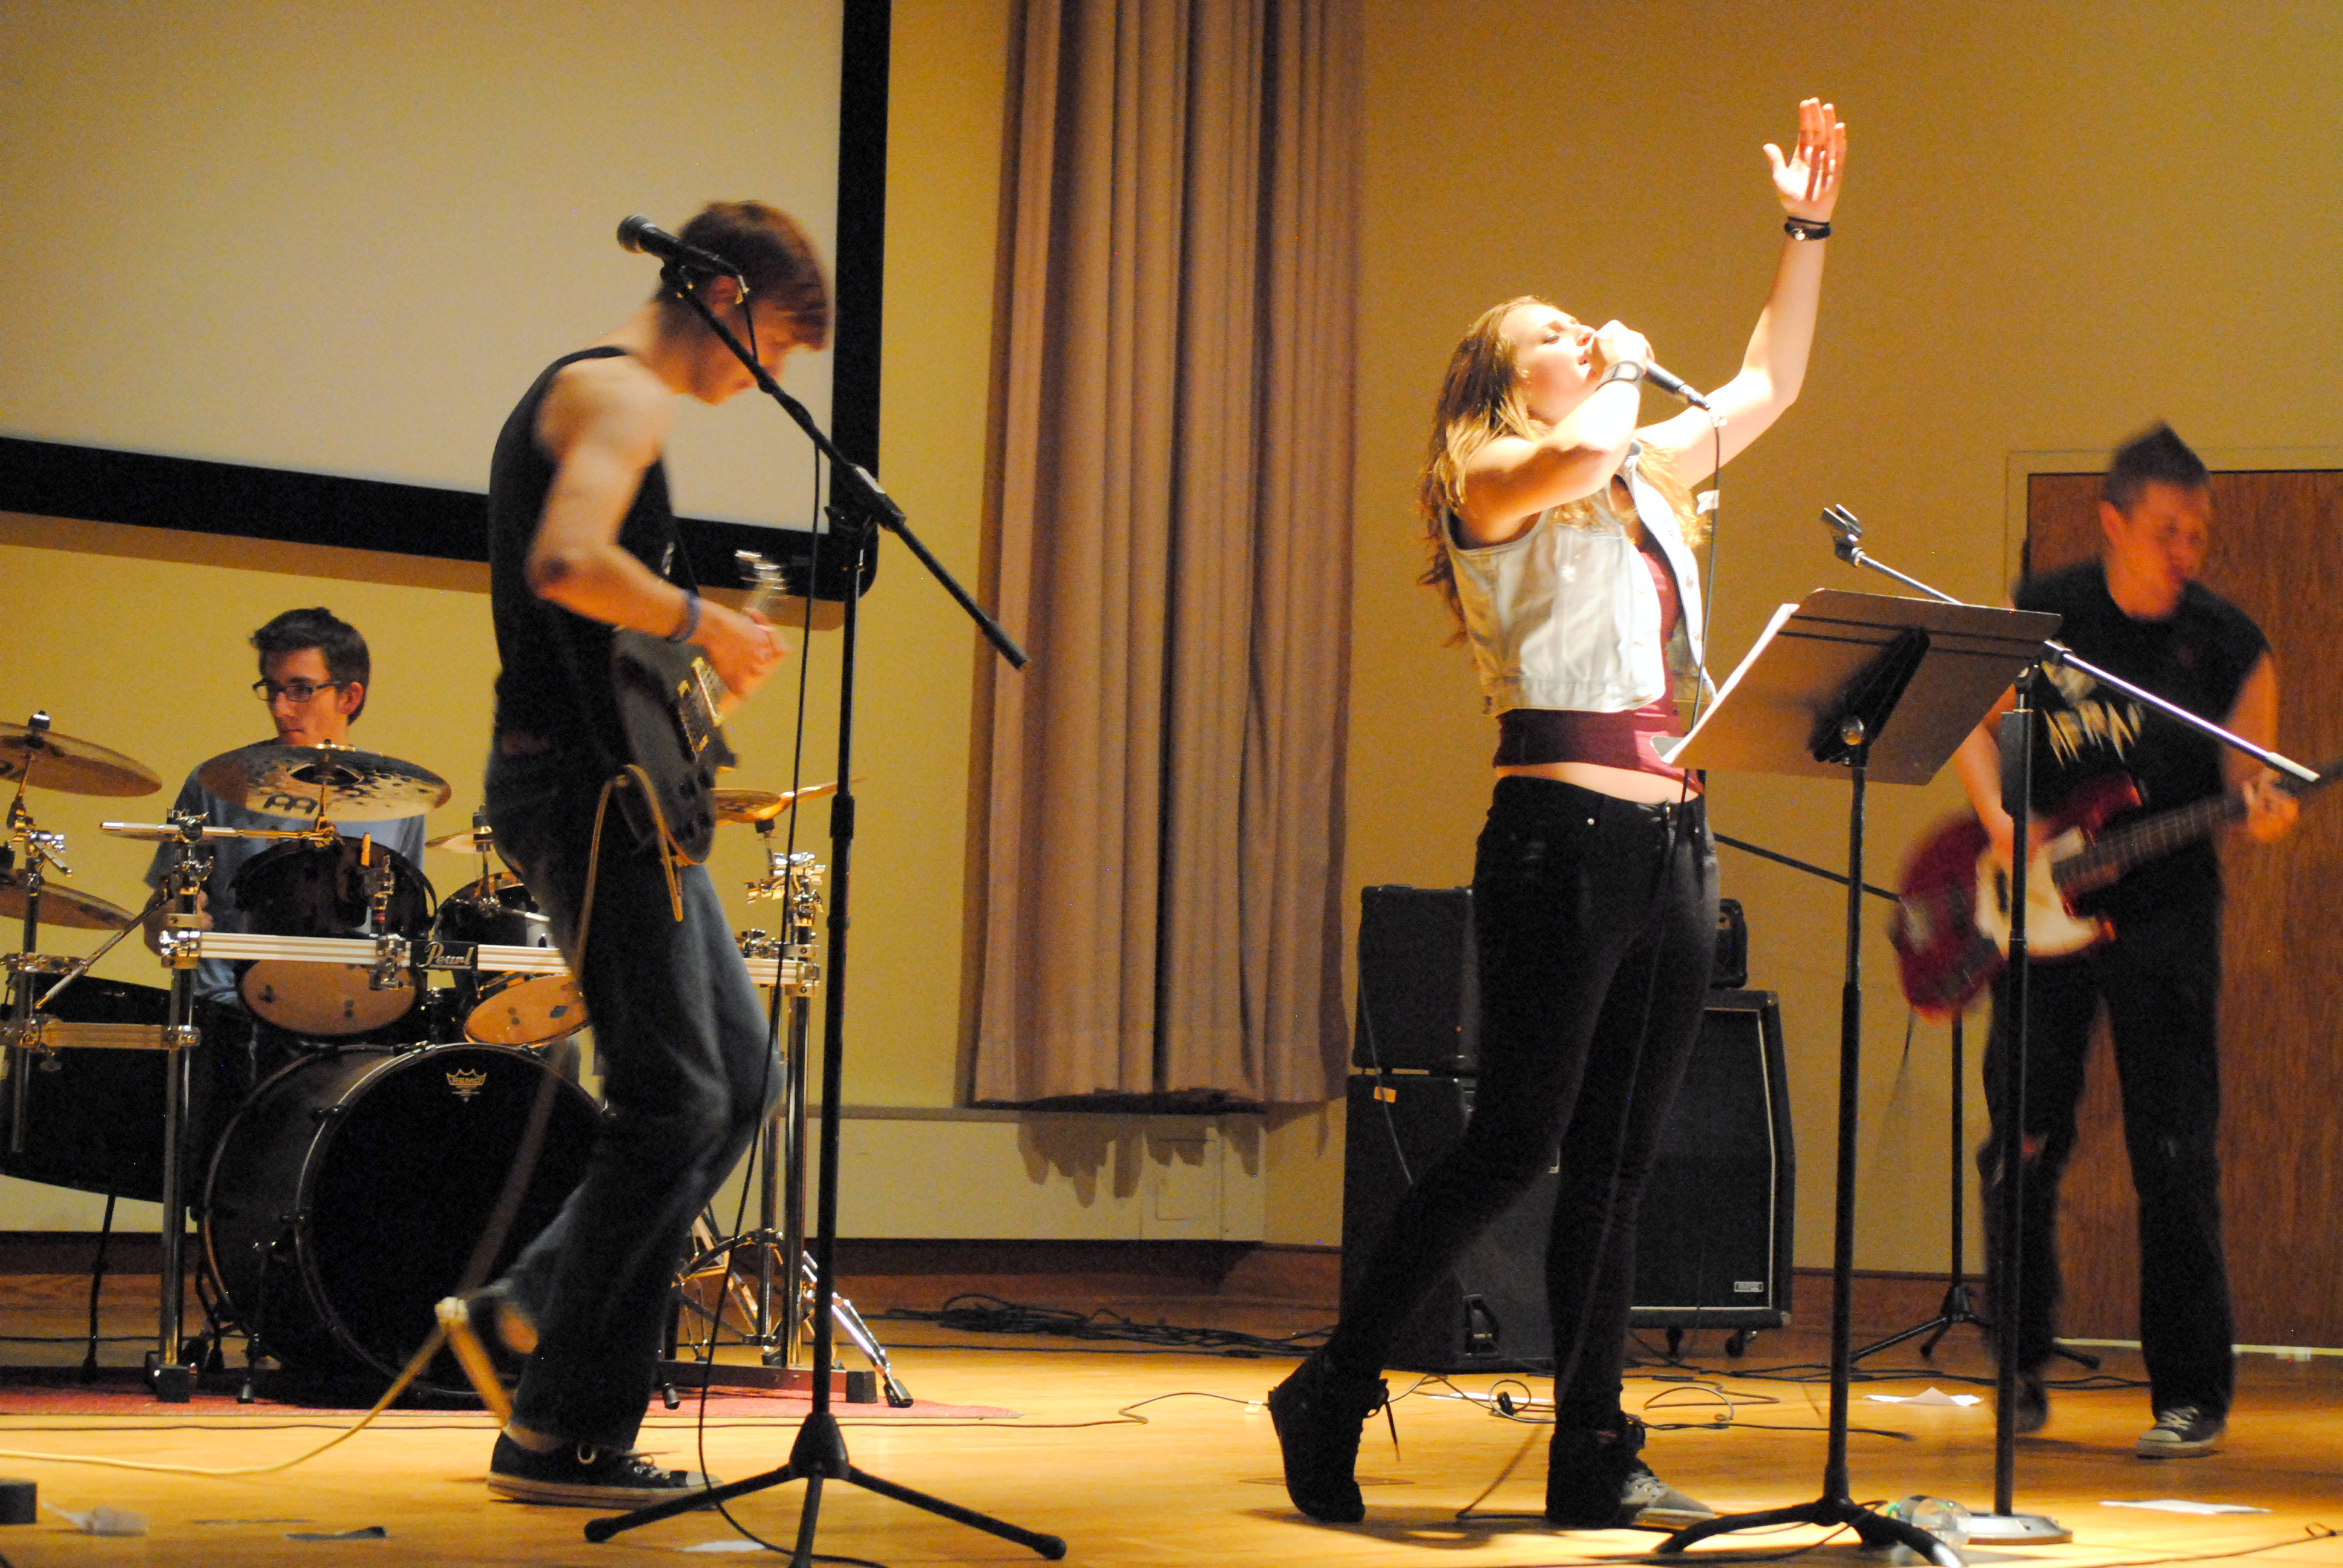 On Thursday, Mount Students and Faculty Hosted a Punk Rock Show in Knott Auditorium. Photo Courtesy of William Hardisky, Photography Editor.